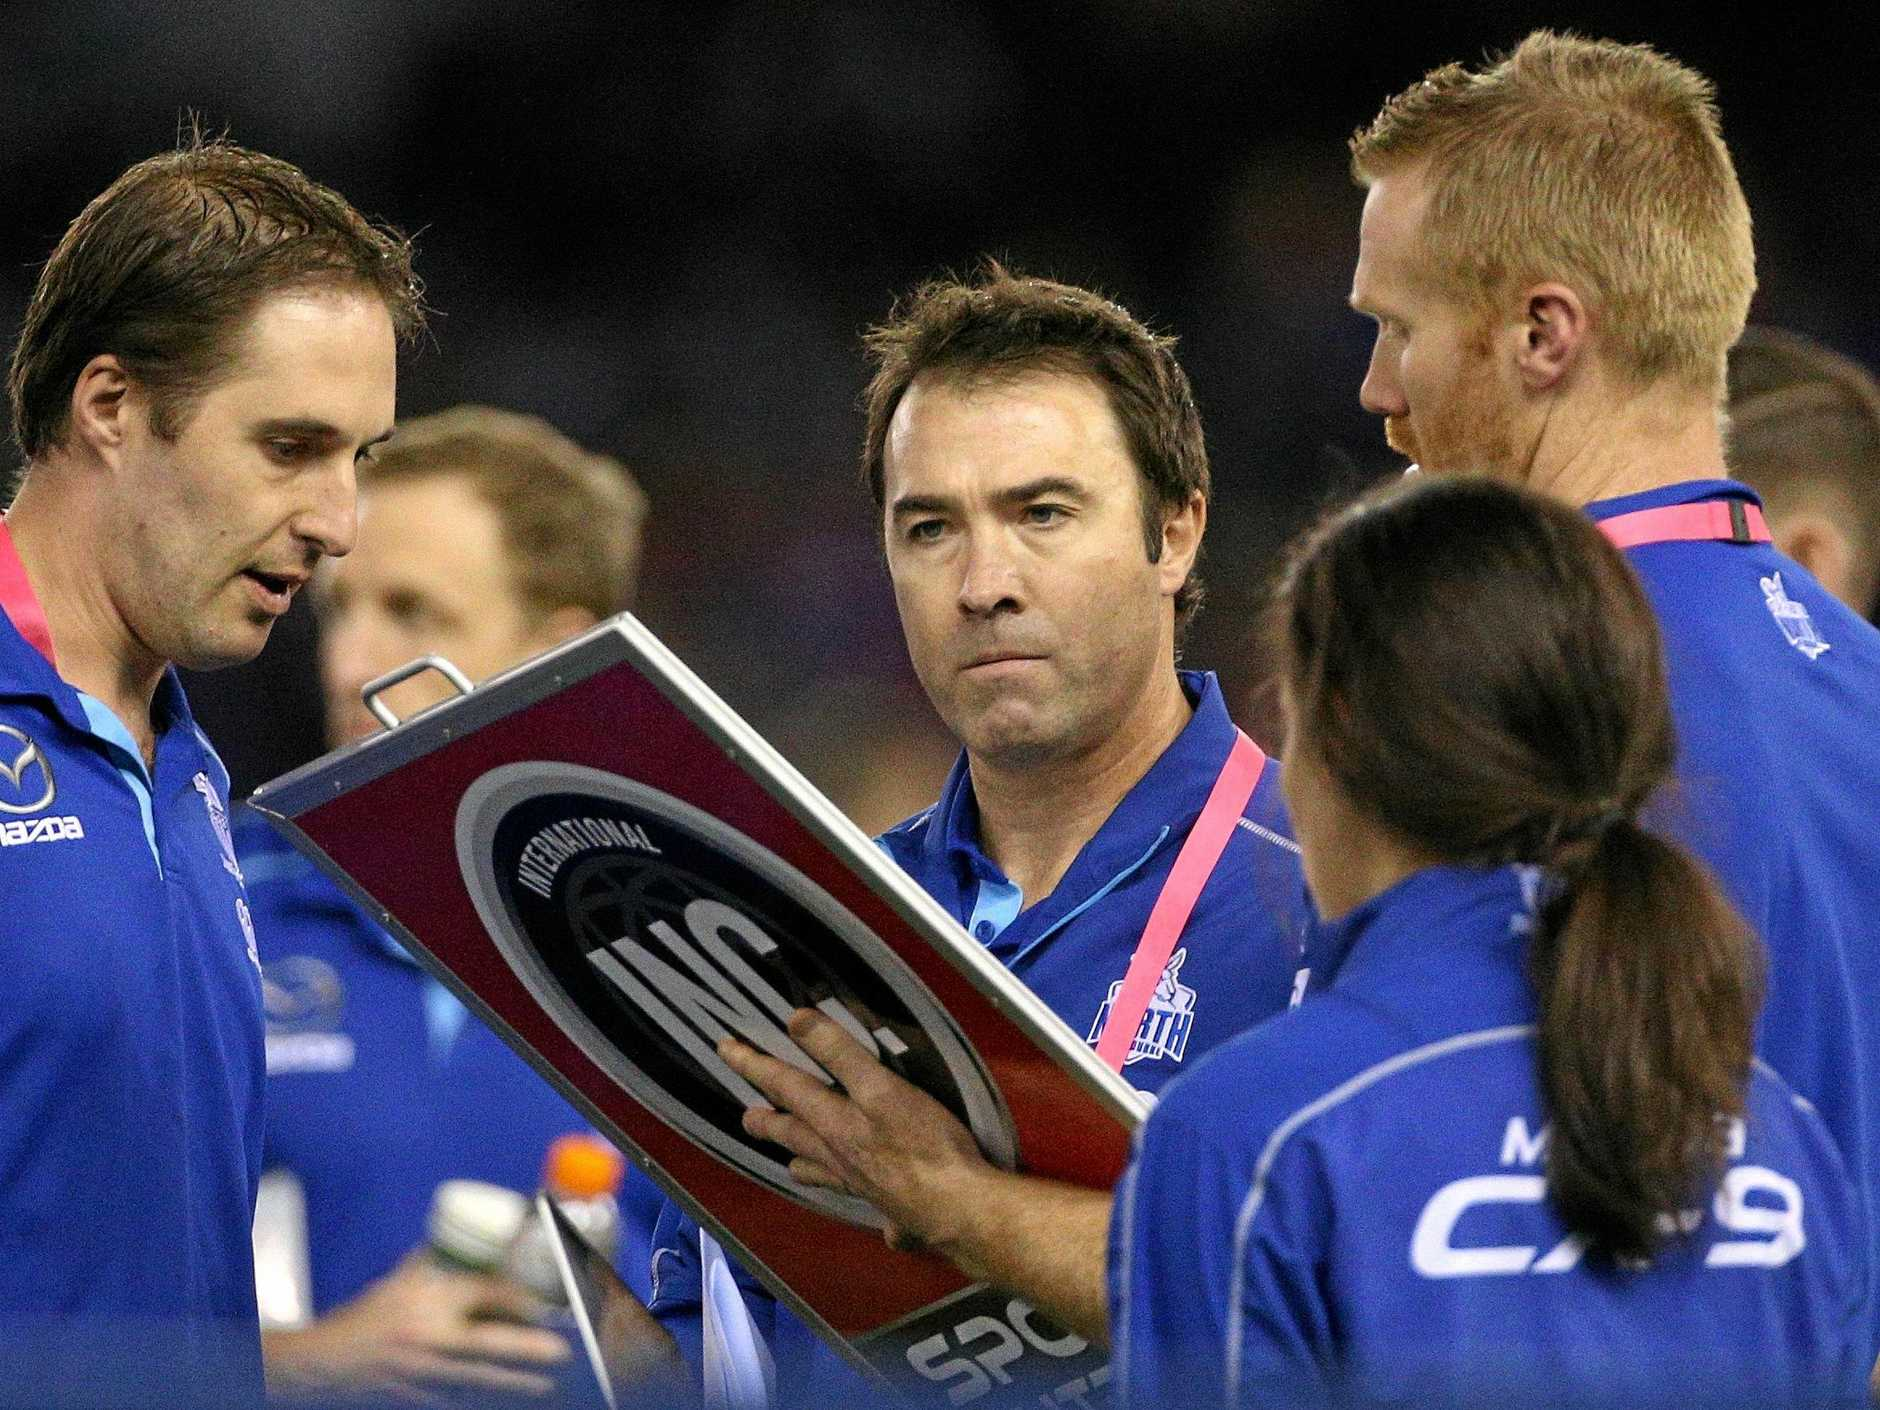 Kangaroos coach Brad Scott, centre, liaises with his staff during his side's clash with the Western Bulldogs at Melbourne's Marvel Stadium on Saturday afternoon. Picture: Hamish Blair/AAP